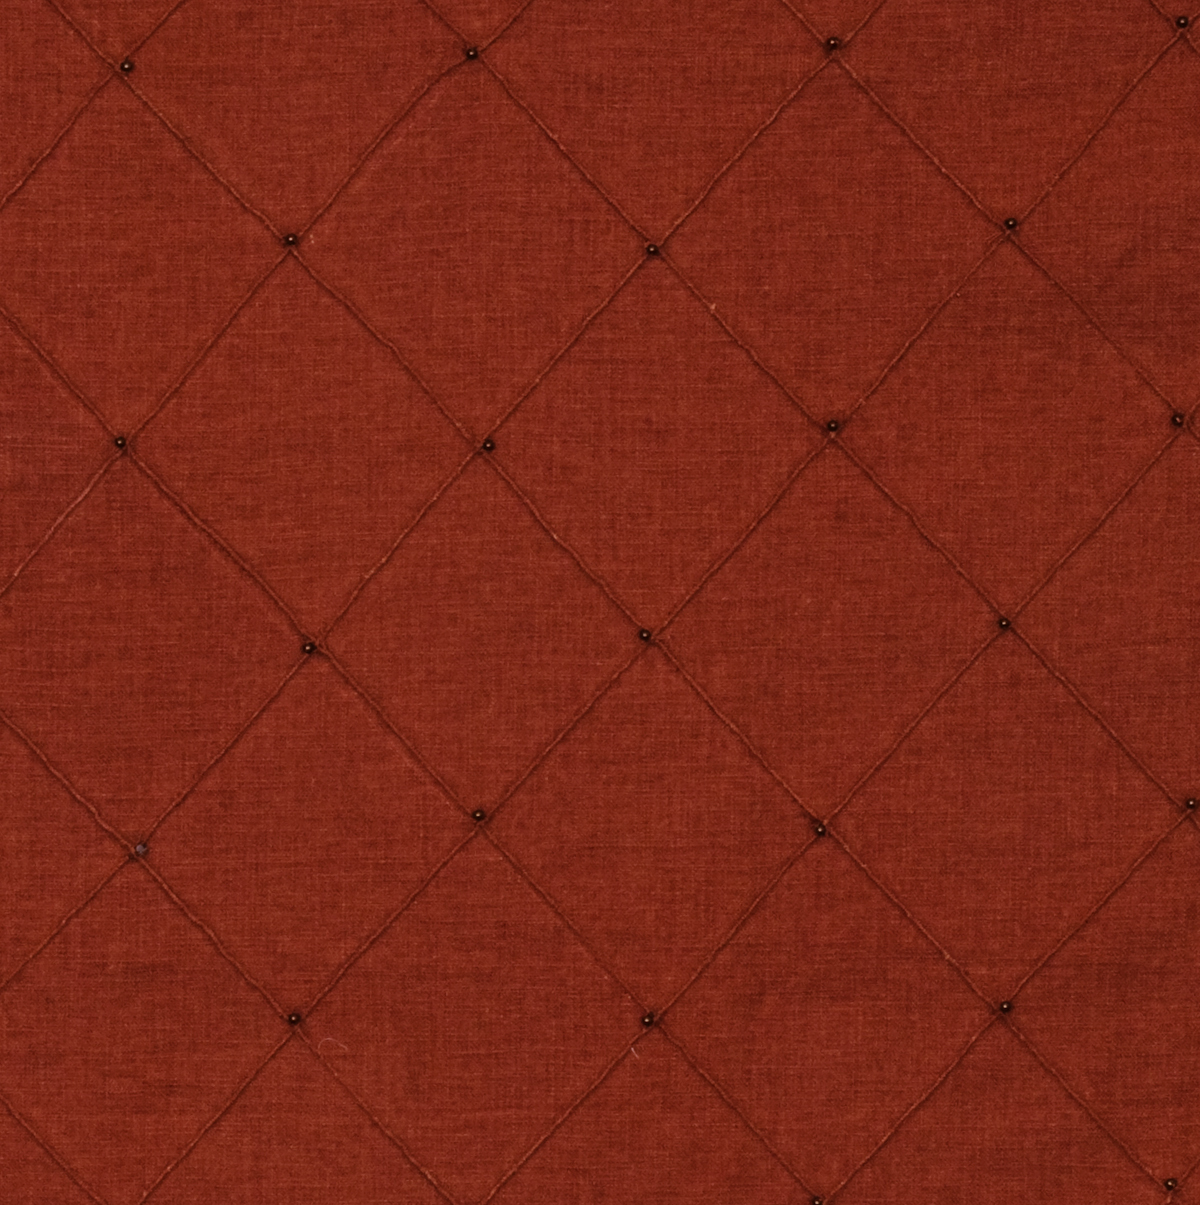 Home Decor 8\u0022x8\u0022 Fabric Swatch-Jaclyn Smith Jasso-Tabasco